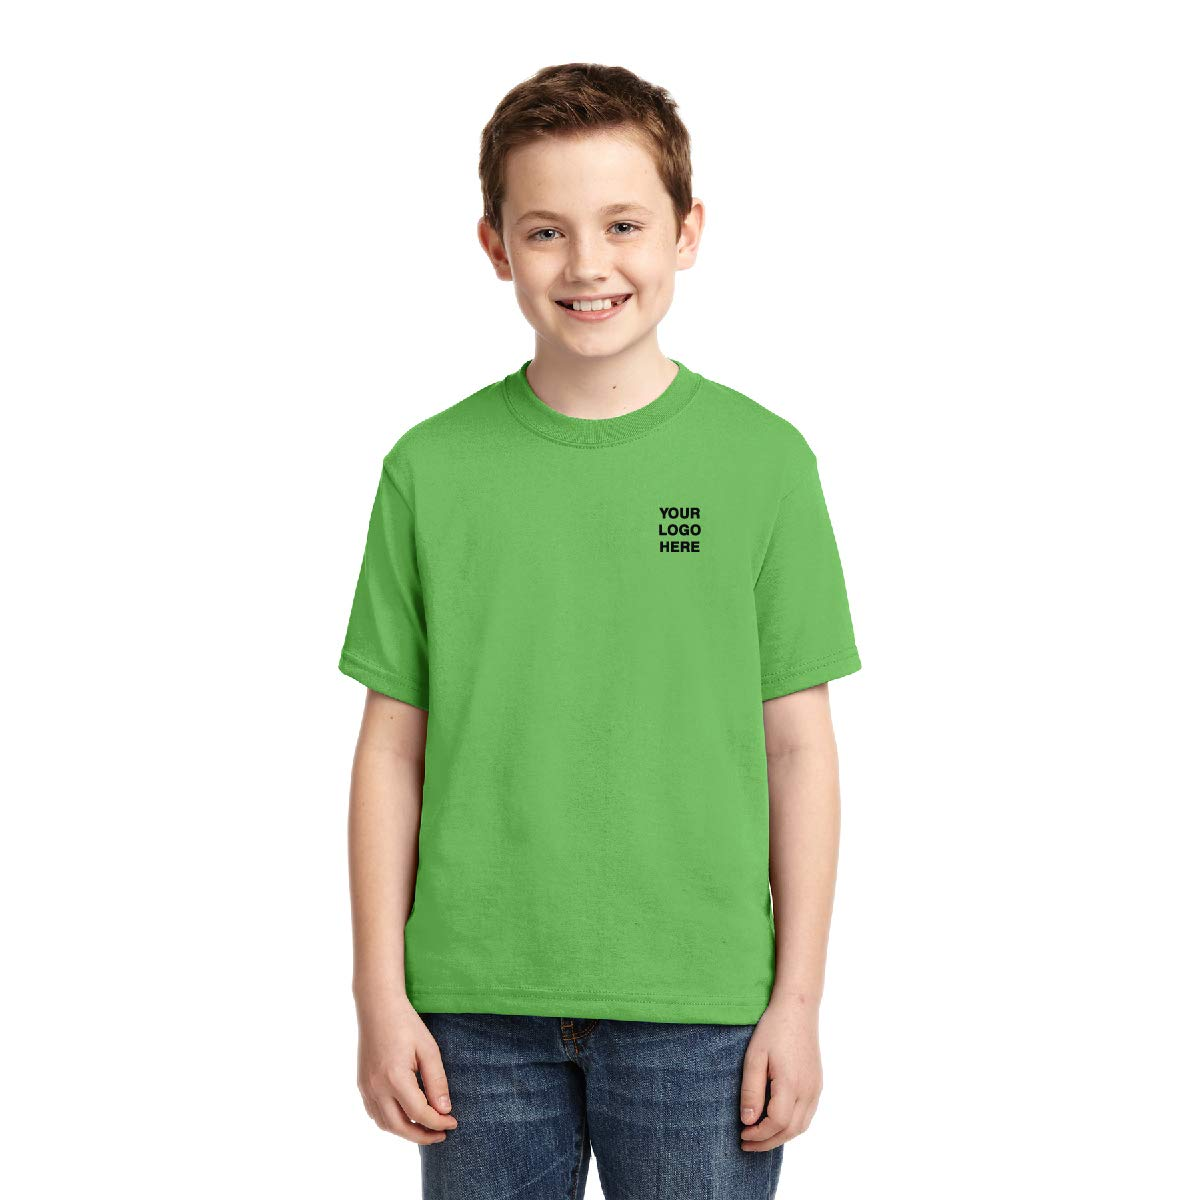 Jerzees Youth Dri-Power T-Shirt - 24 Qty - 8.13 Each - Promotional Tee